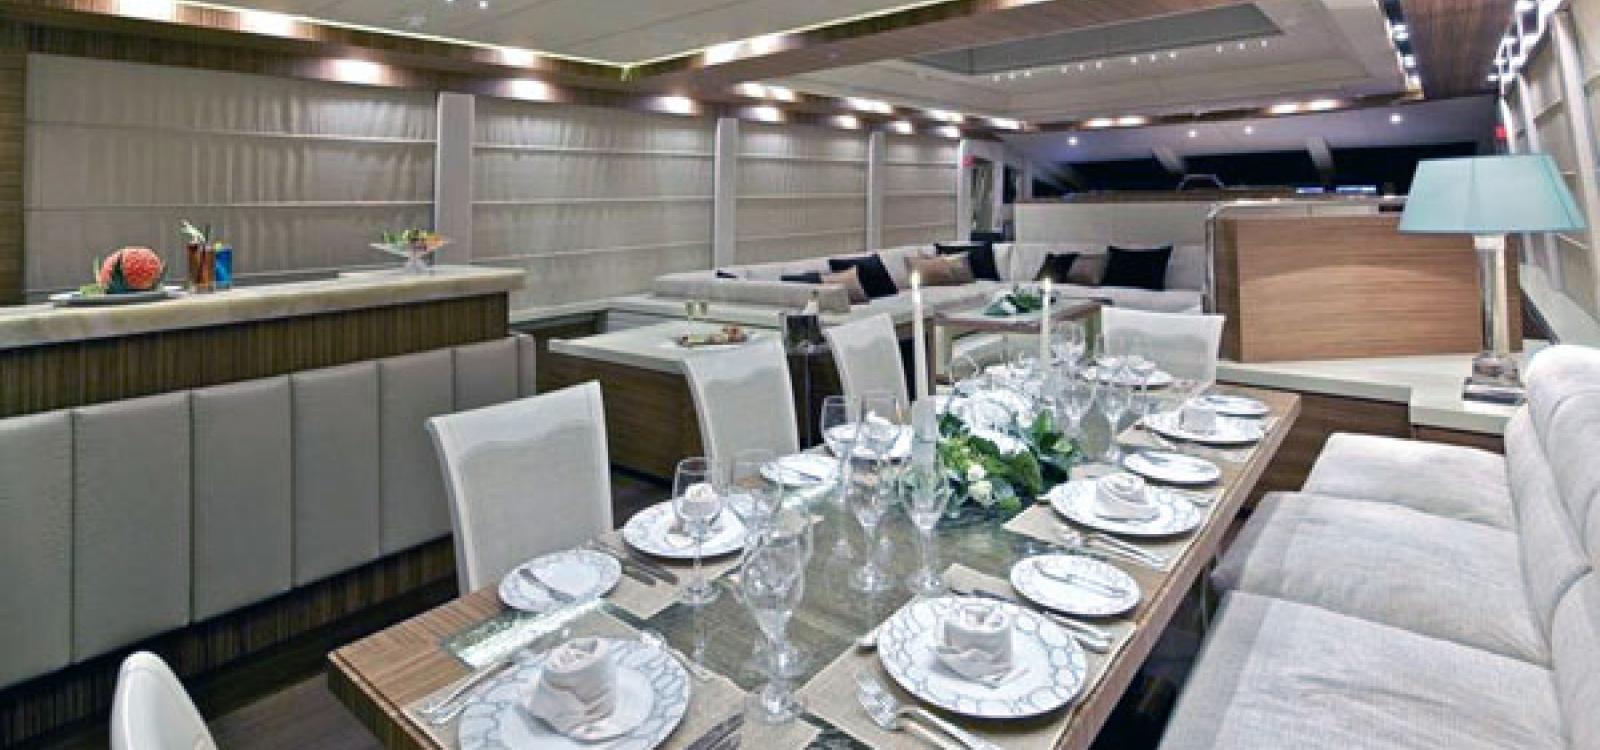 5 Rooms, Motor Yacht, For Charter, 8 Bathrooms, Listing ID 1042